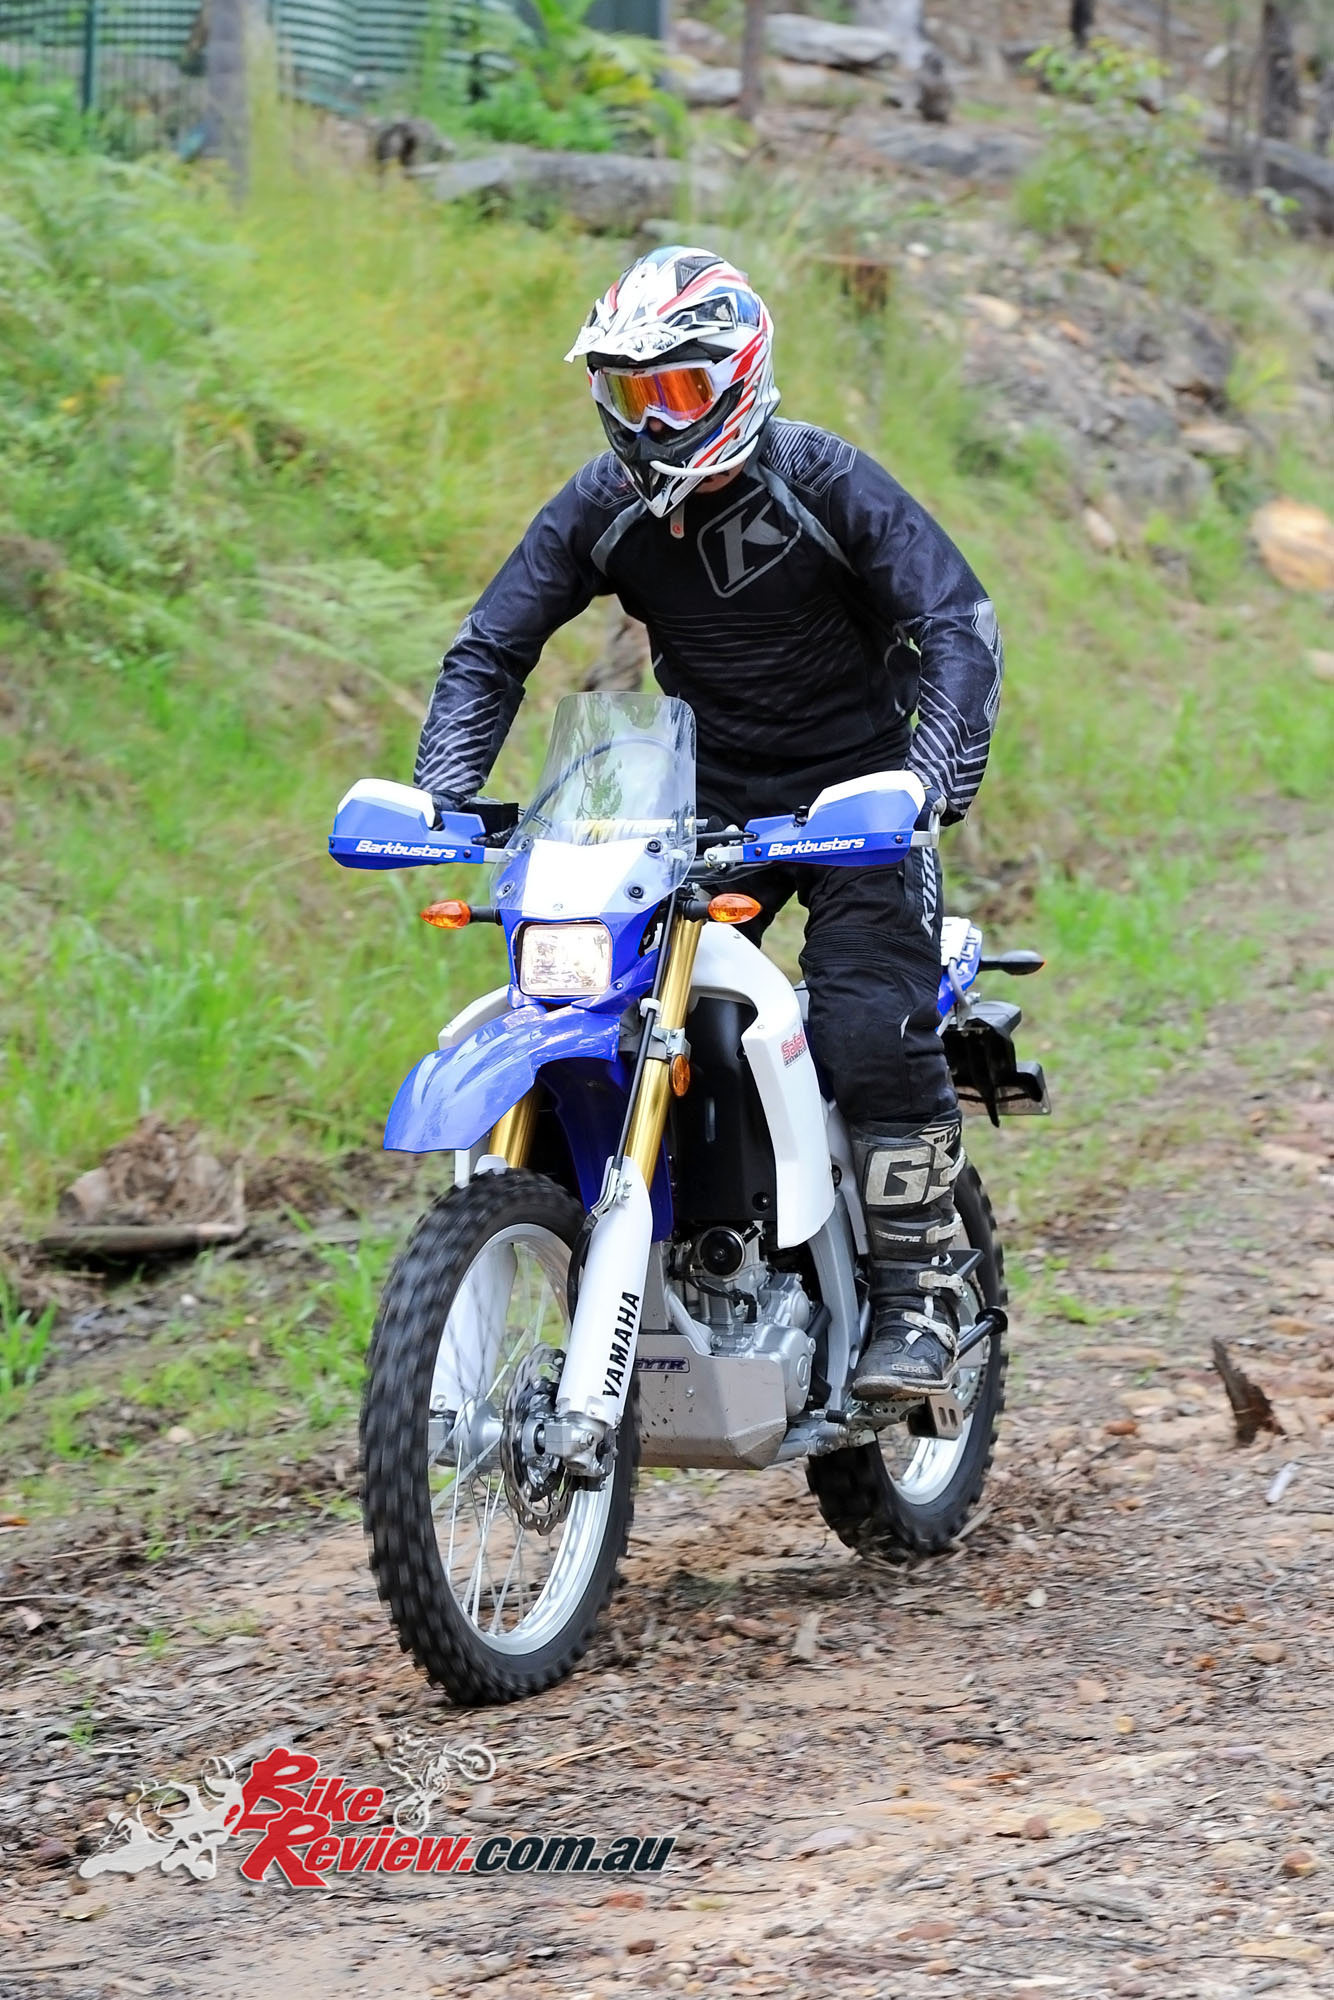 Review 2016 yamaha wr250r bike review for Yamaha wr250r horsepower